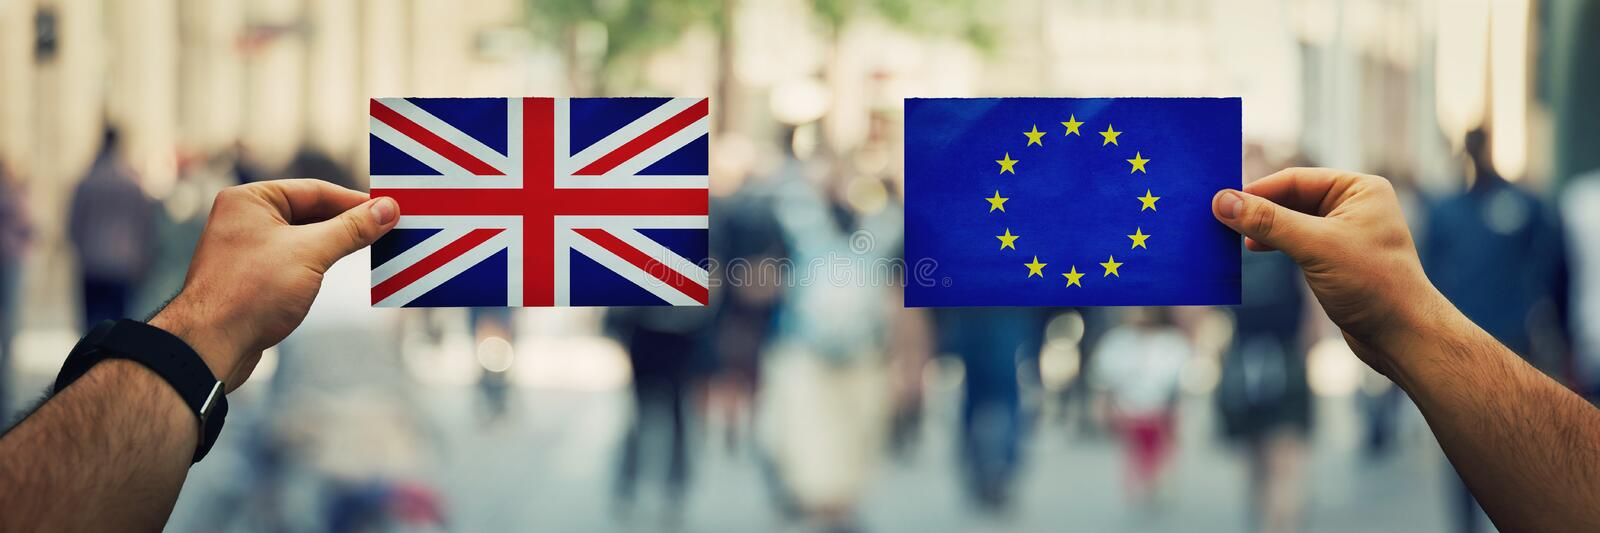 Uk vs eu royalty free stock photos